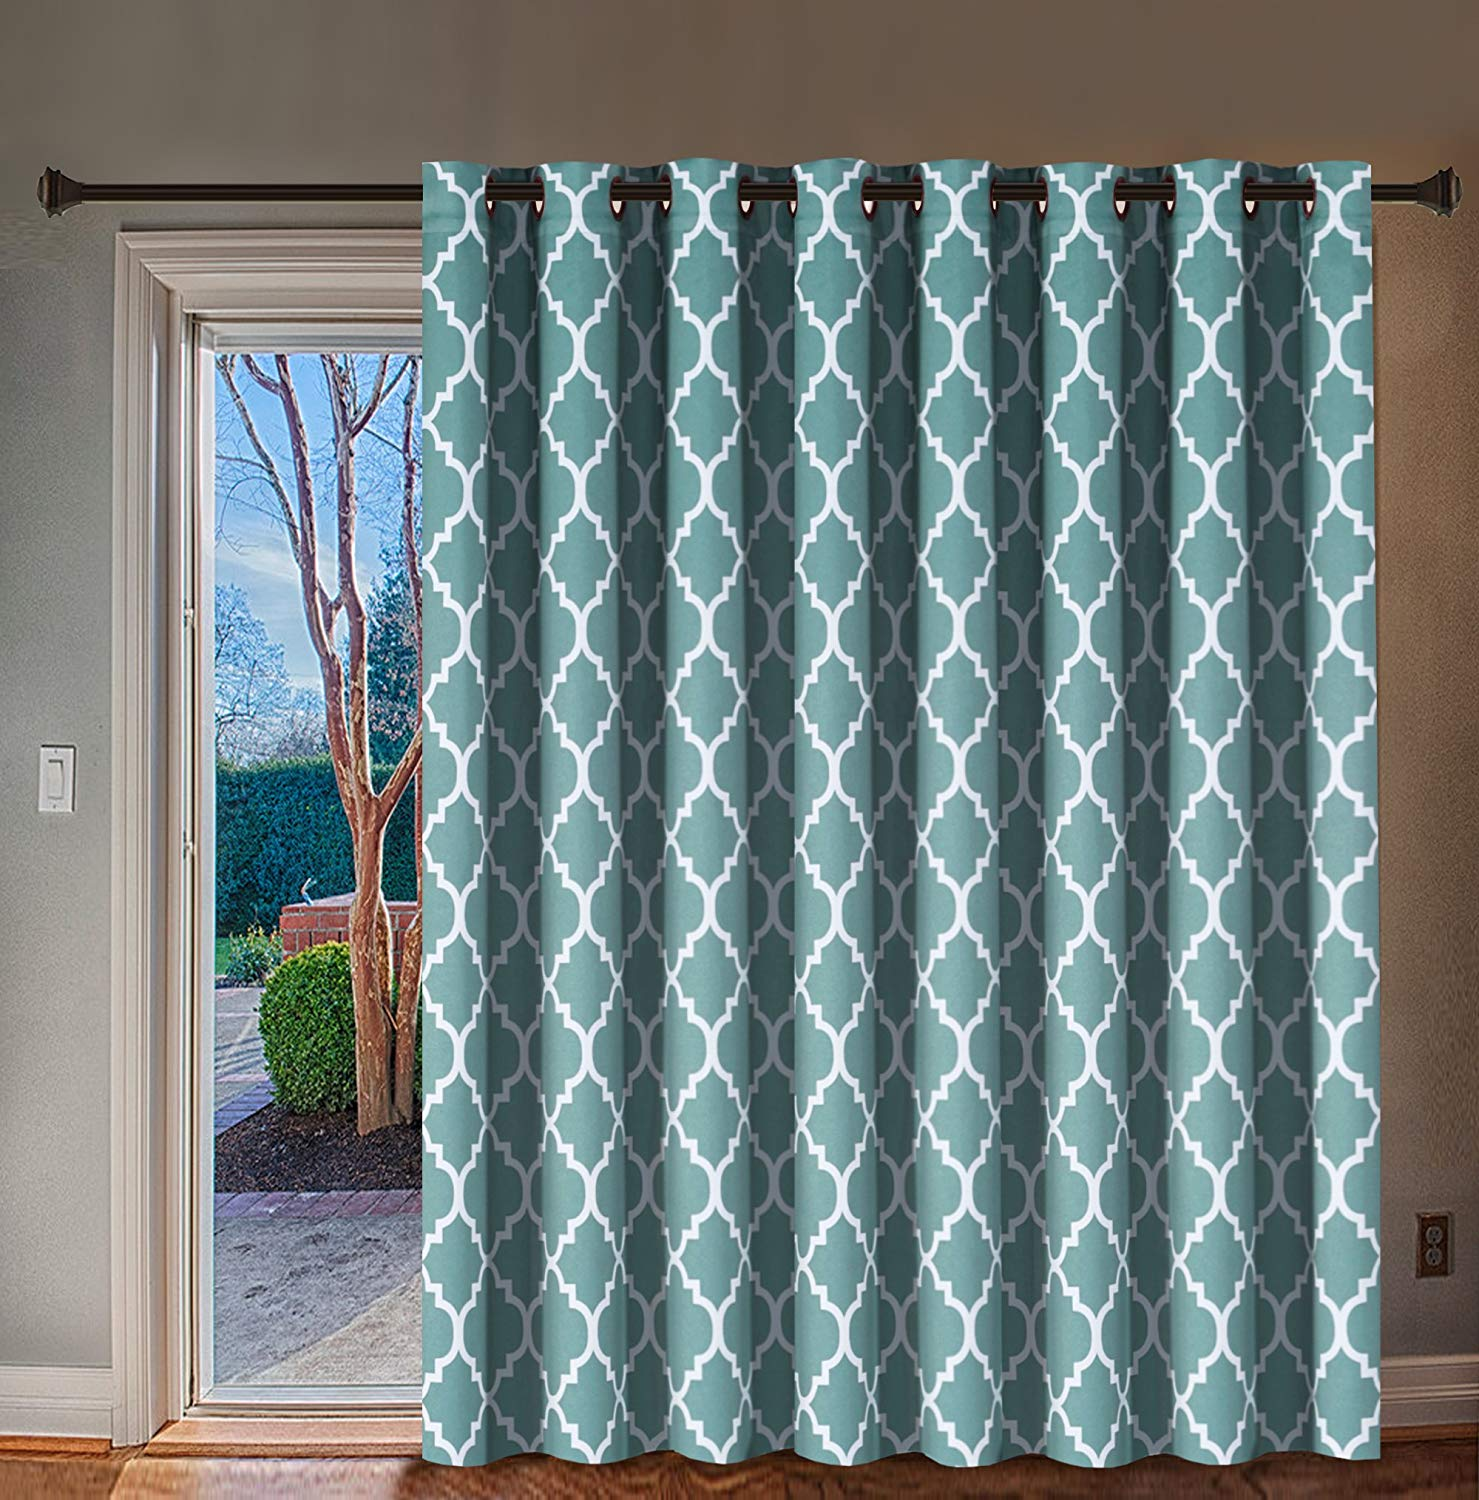 Top 10 Best Room Divider Curtain In 2018 Reviews Top